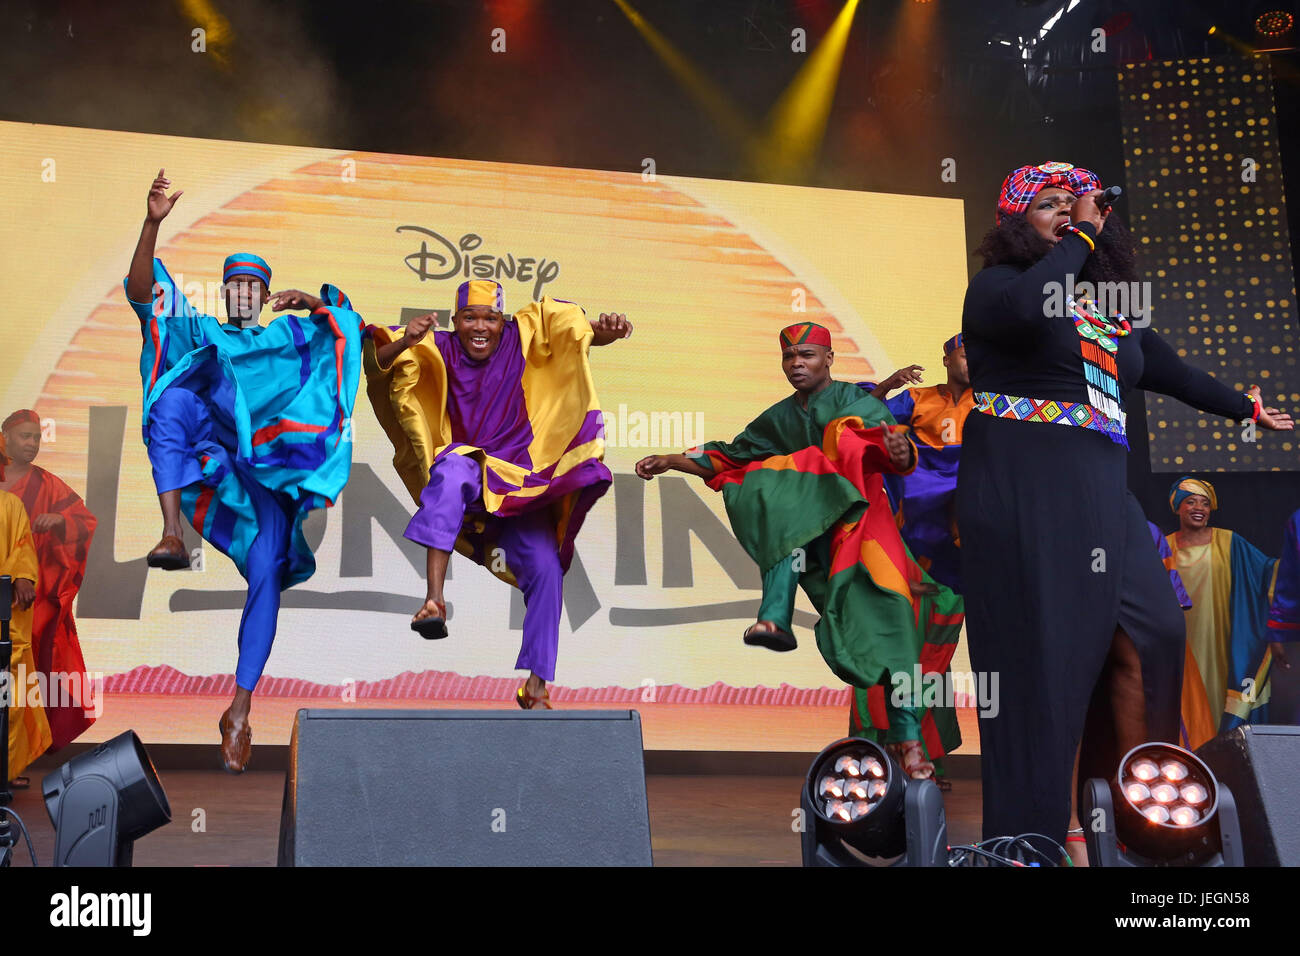 London Uk 25th June 2017 The Cast Of Disney S The Lion King Stock Photo Alamy